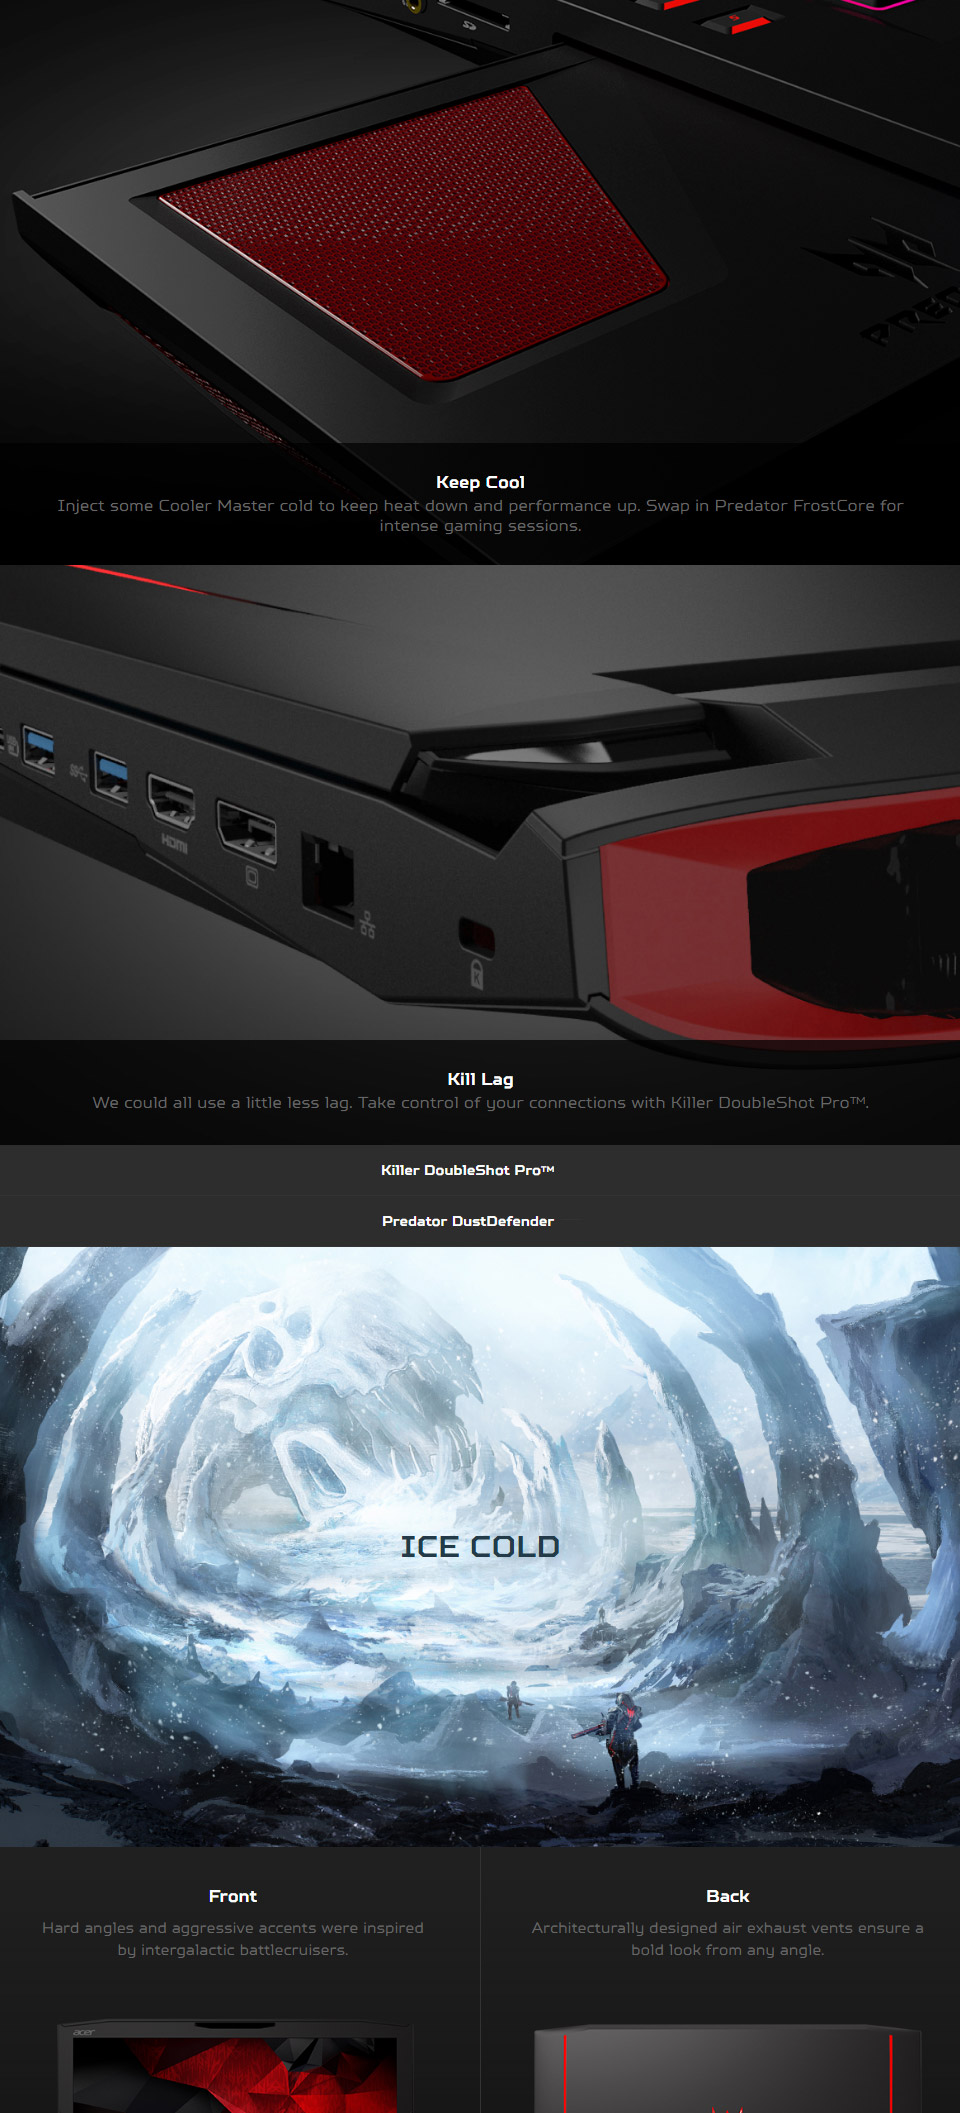 Acer Predator 17 Core I7 173in Gaming Notebook G9 793 75ds 32gb Ddr4 Memory Nvidia Geforce Gtx 1070 8gb Graphics 256gb Solid State Drive 2tb Hard Full Hd 1920x1080 Ips Display Gigabit Lan